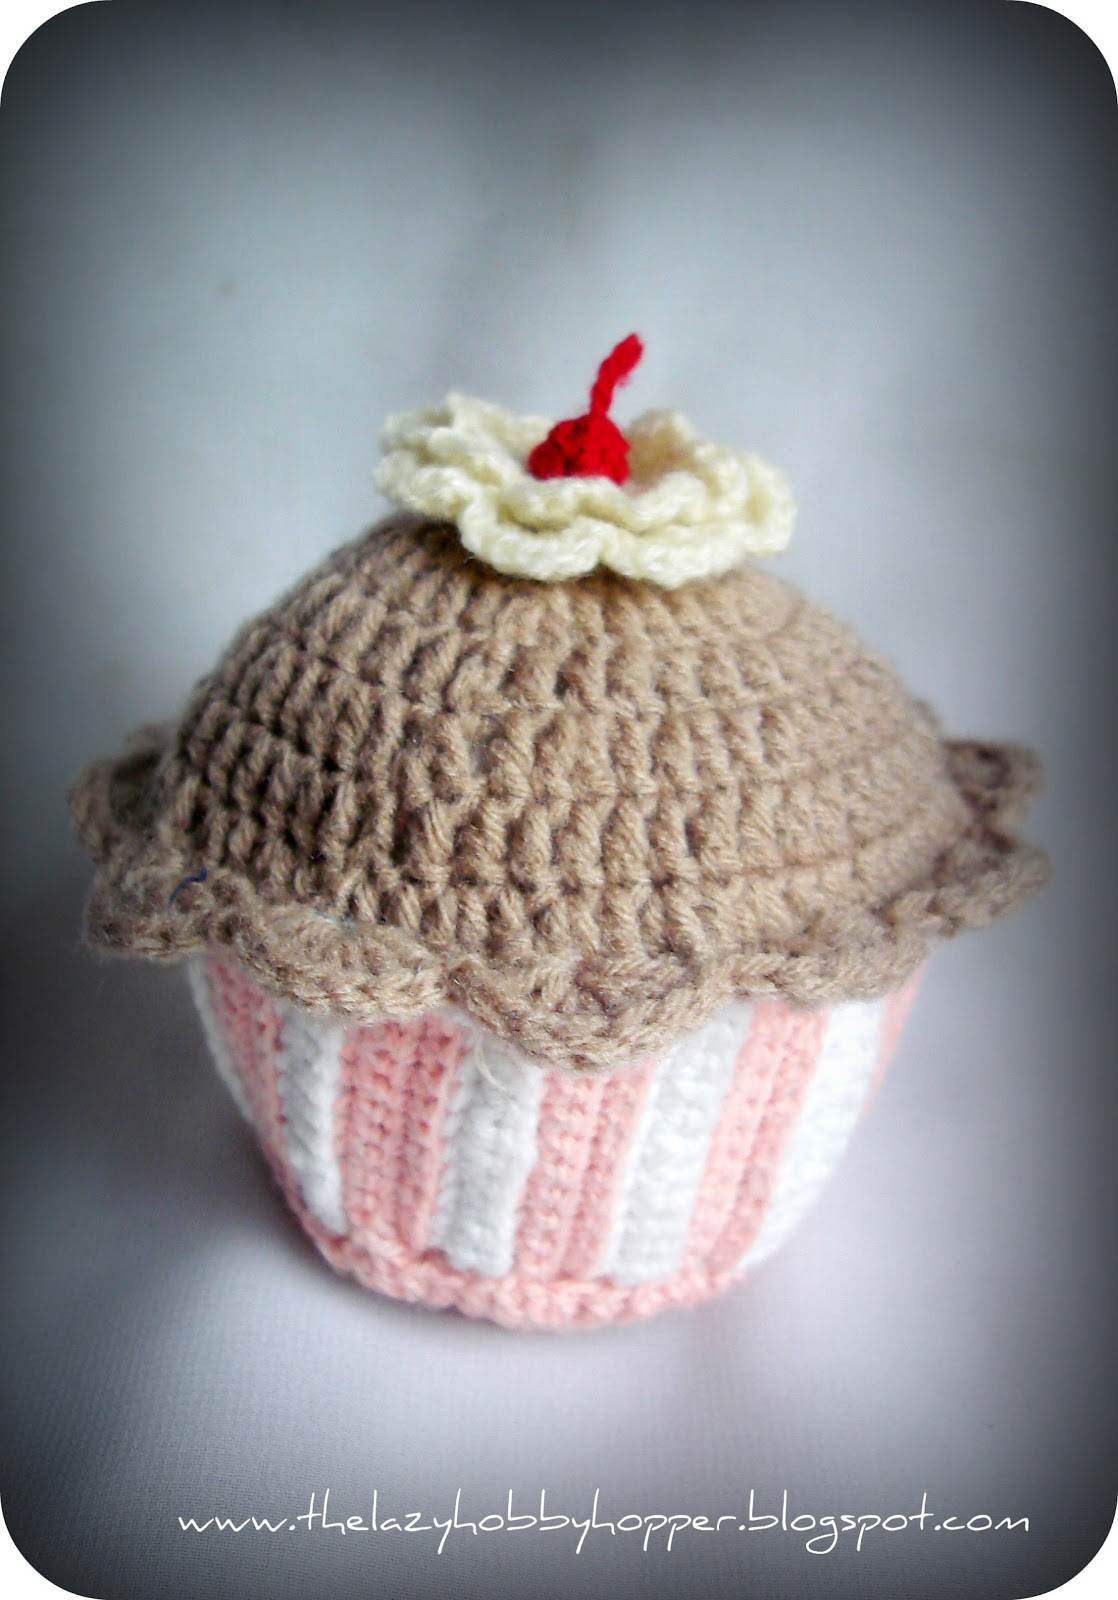 Crochet Pattern Free Cupcake : The Lazy Hobbyhopper: Crochet cupcake